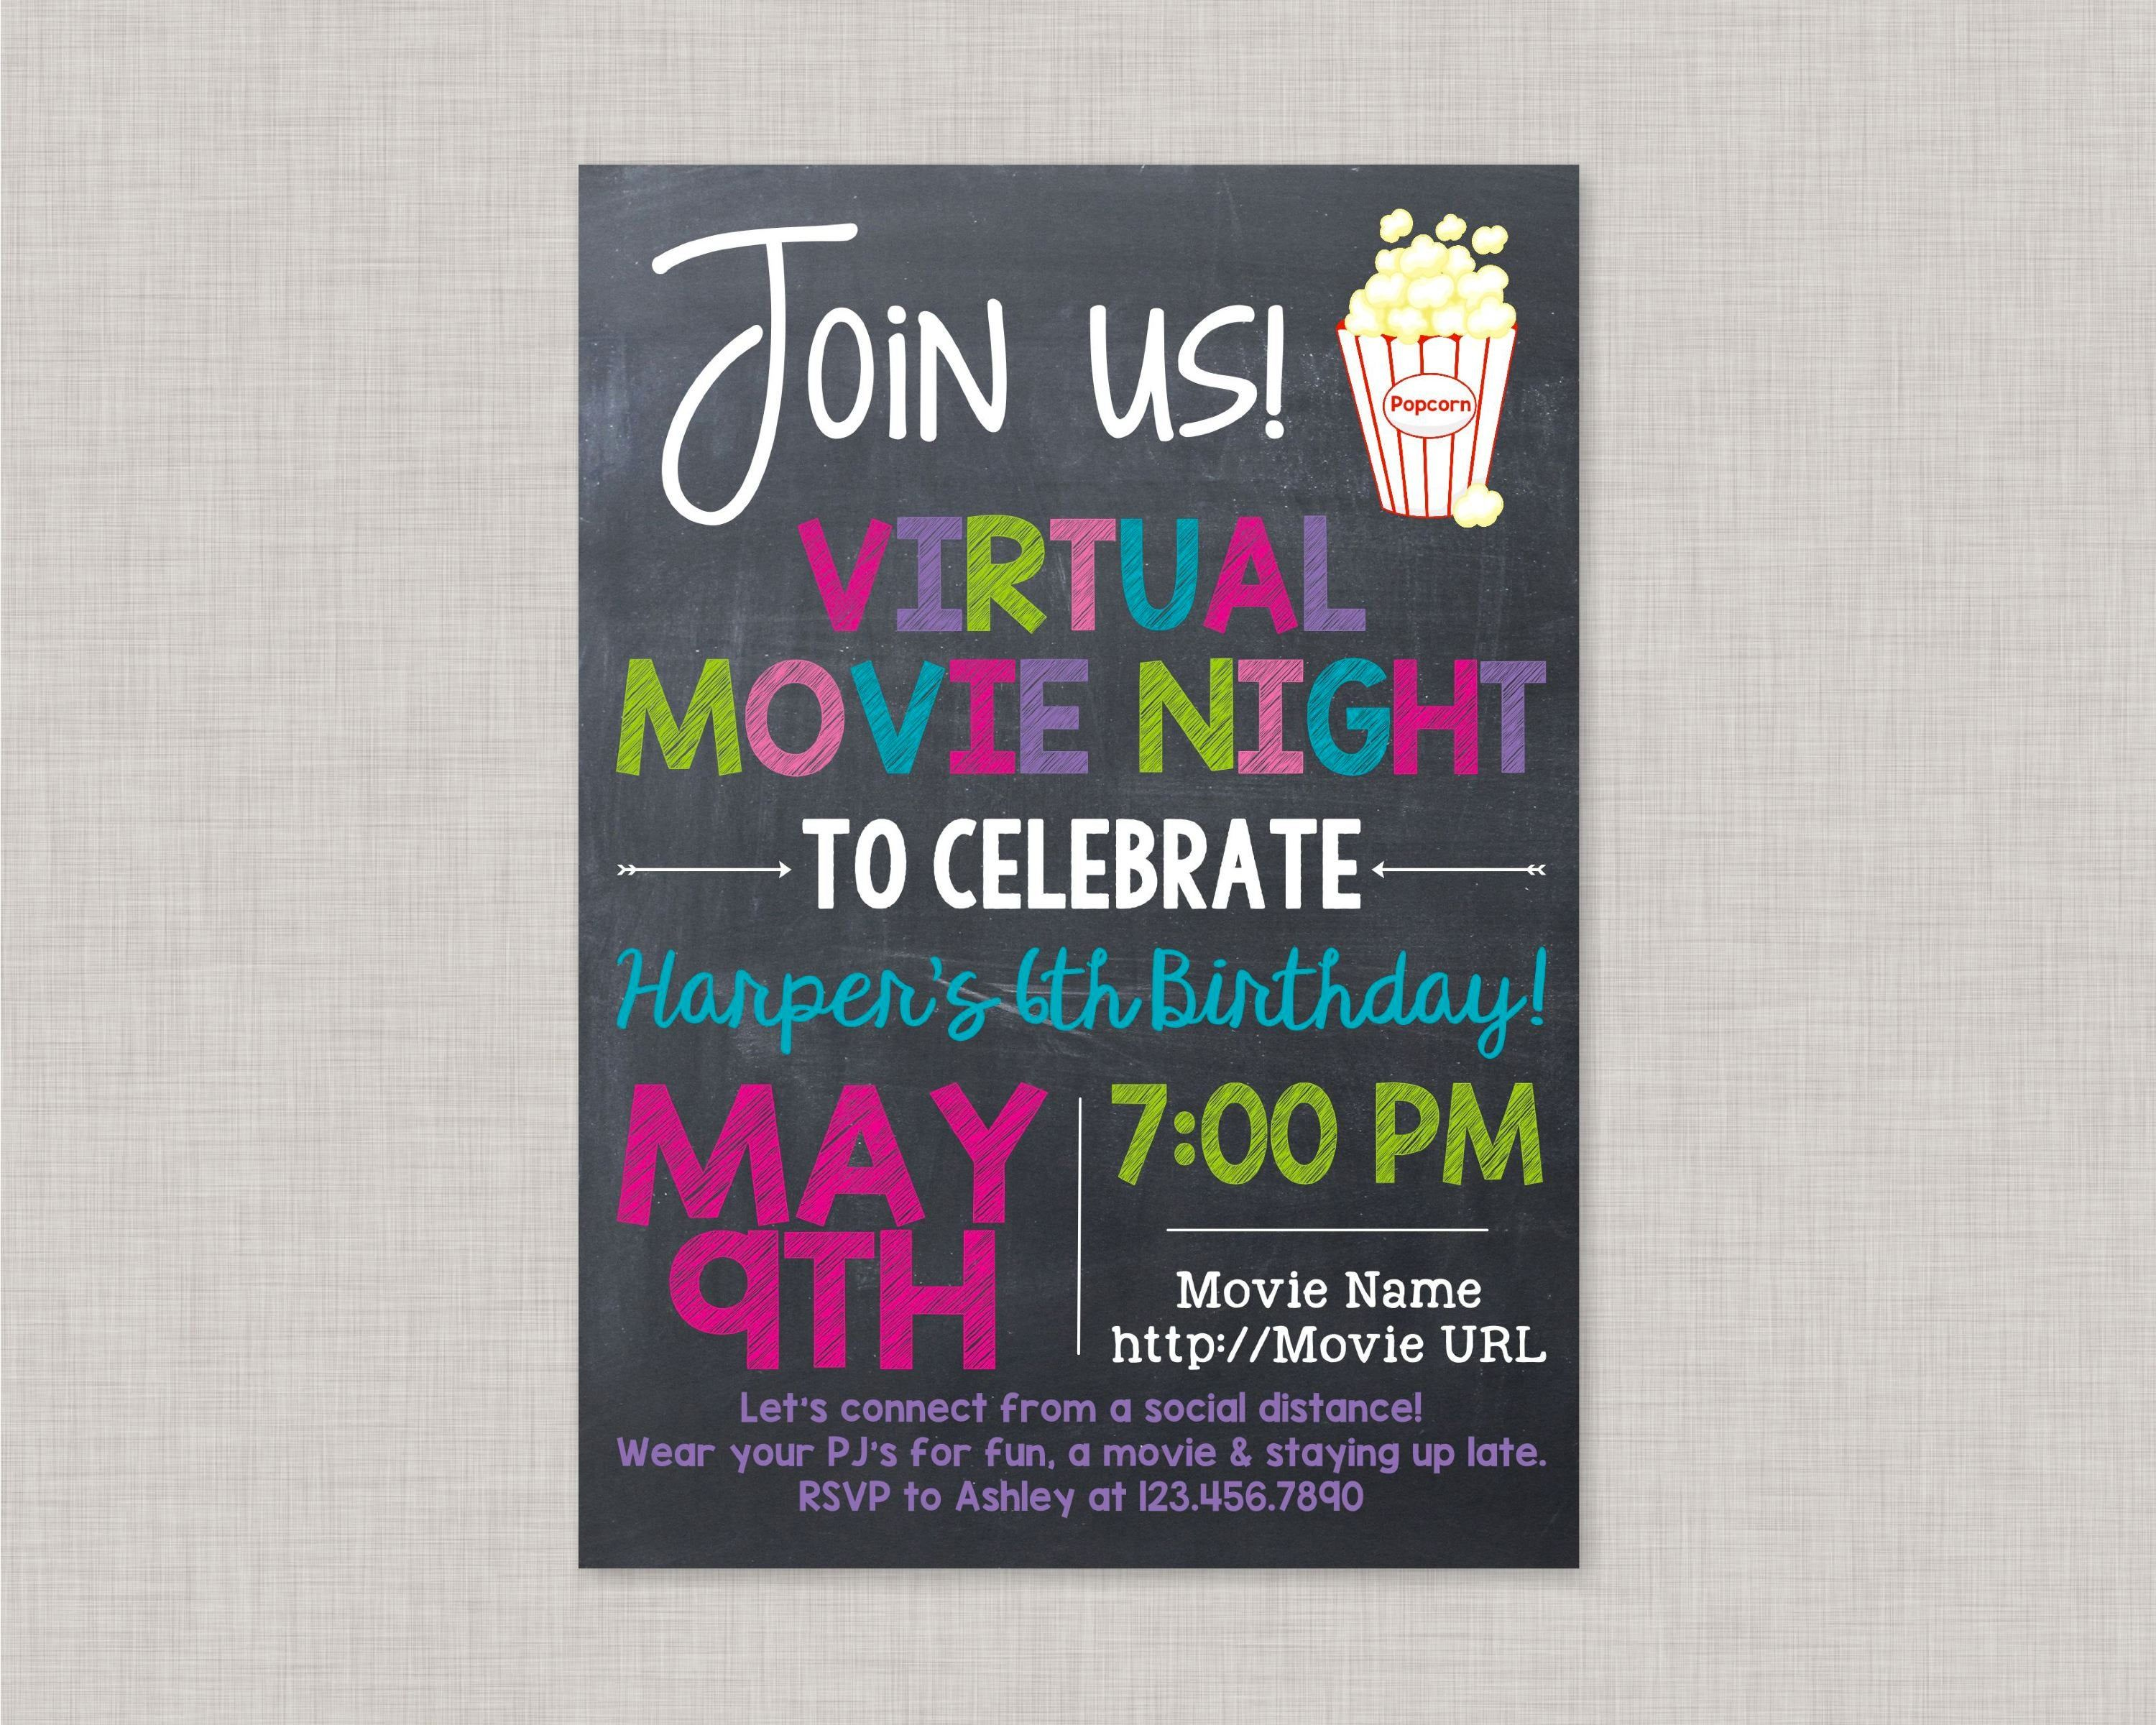 Virtual Movie Night Party Invitation